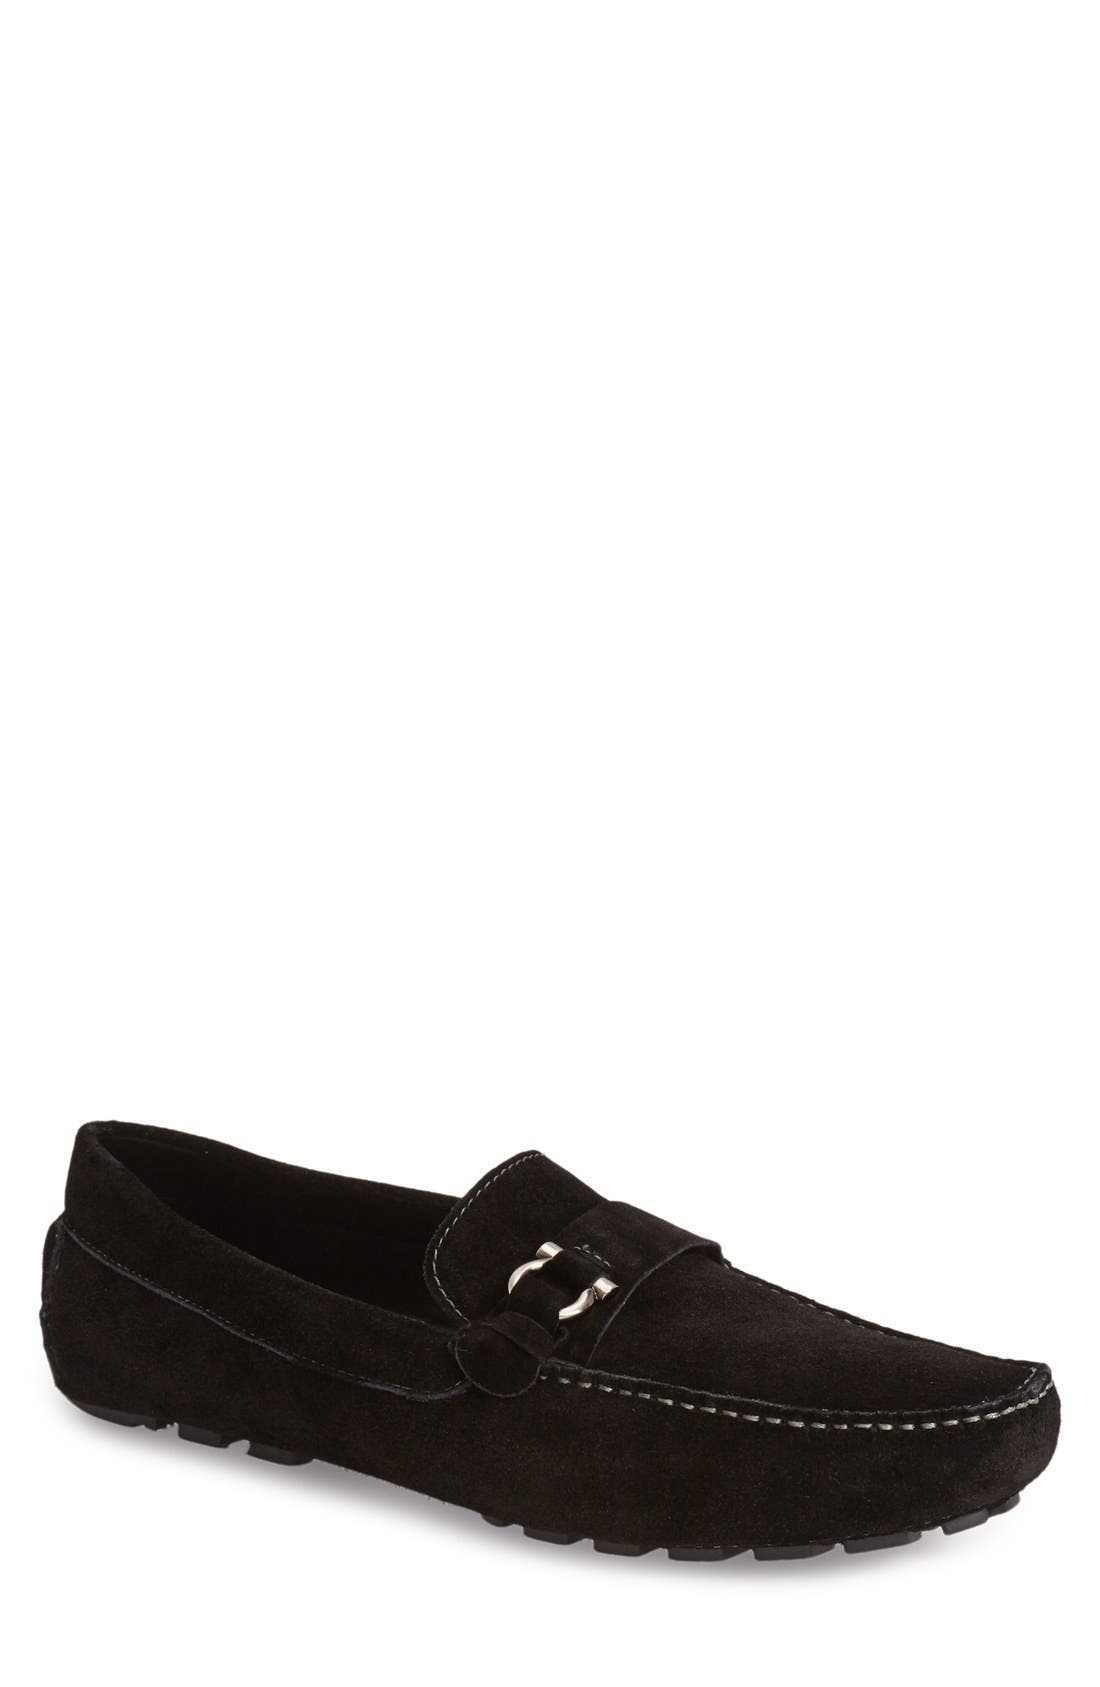 Zanzara 'Abbot' Driving Shoe (Men)